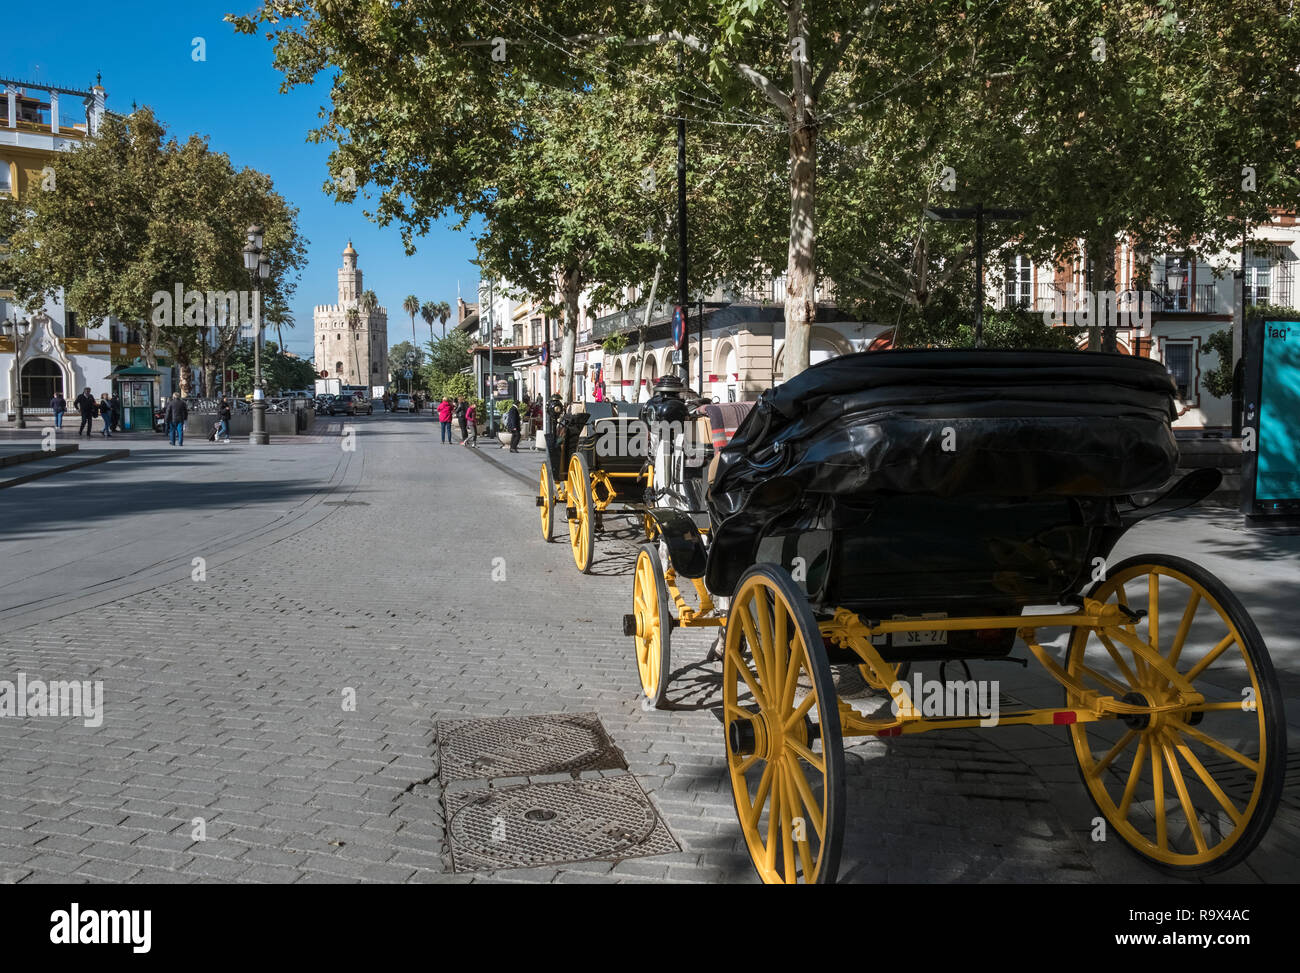 Horse drawn carriages waiting for customers, with historic defensive tower Torre Del Oro in the distance, Seville, Spain. Stock Photo